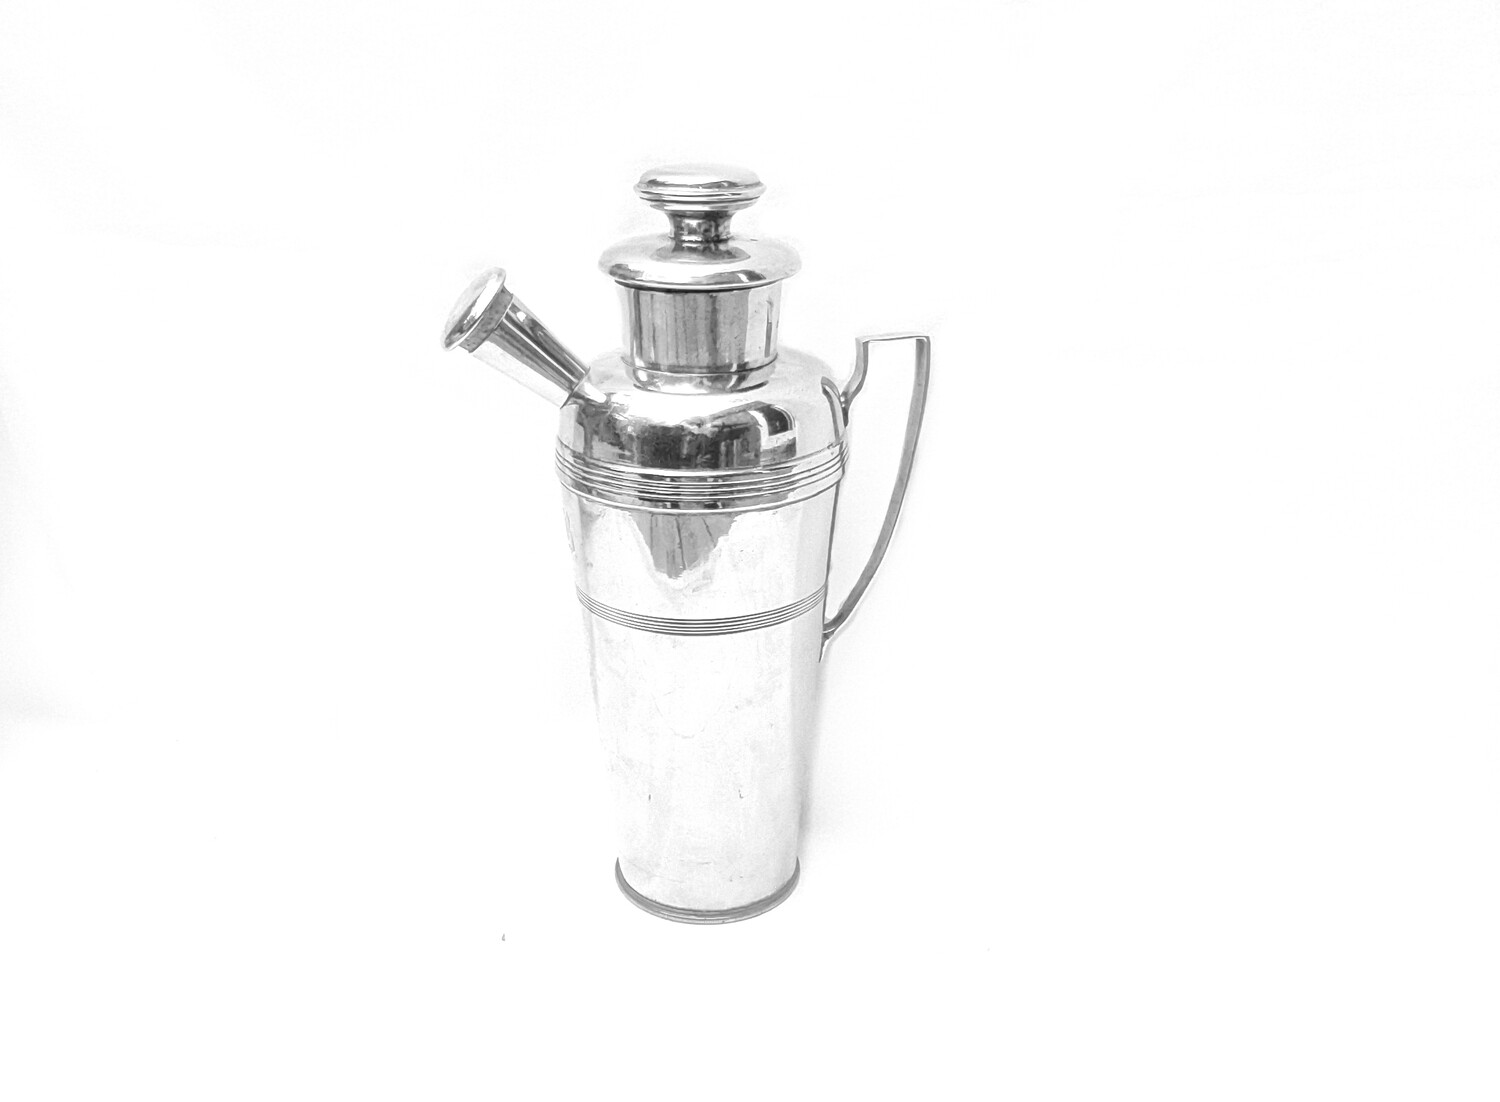 RARE Art Deco Igene Patented Cocktail Shaker 1920s Silver Shaker